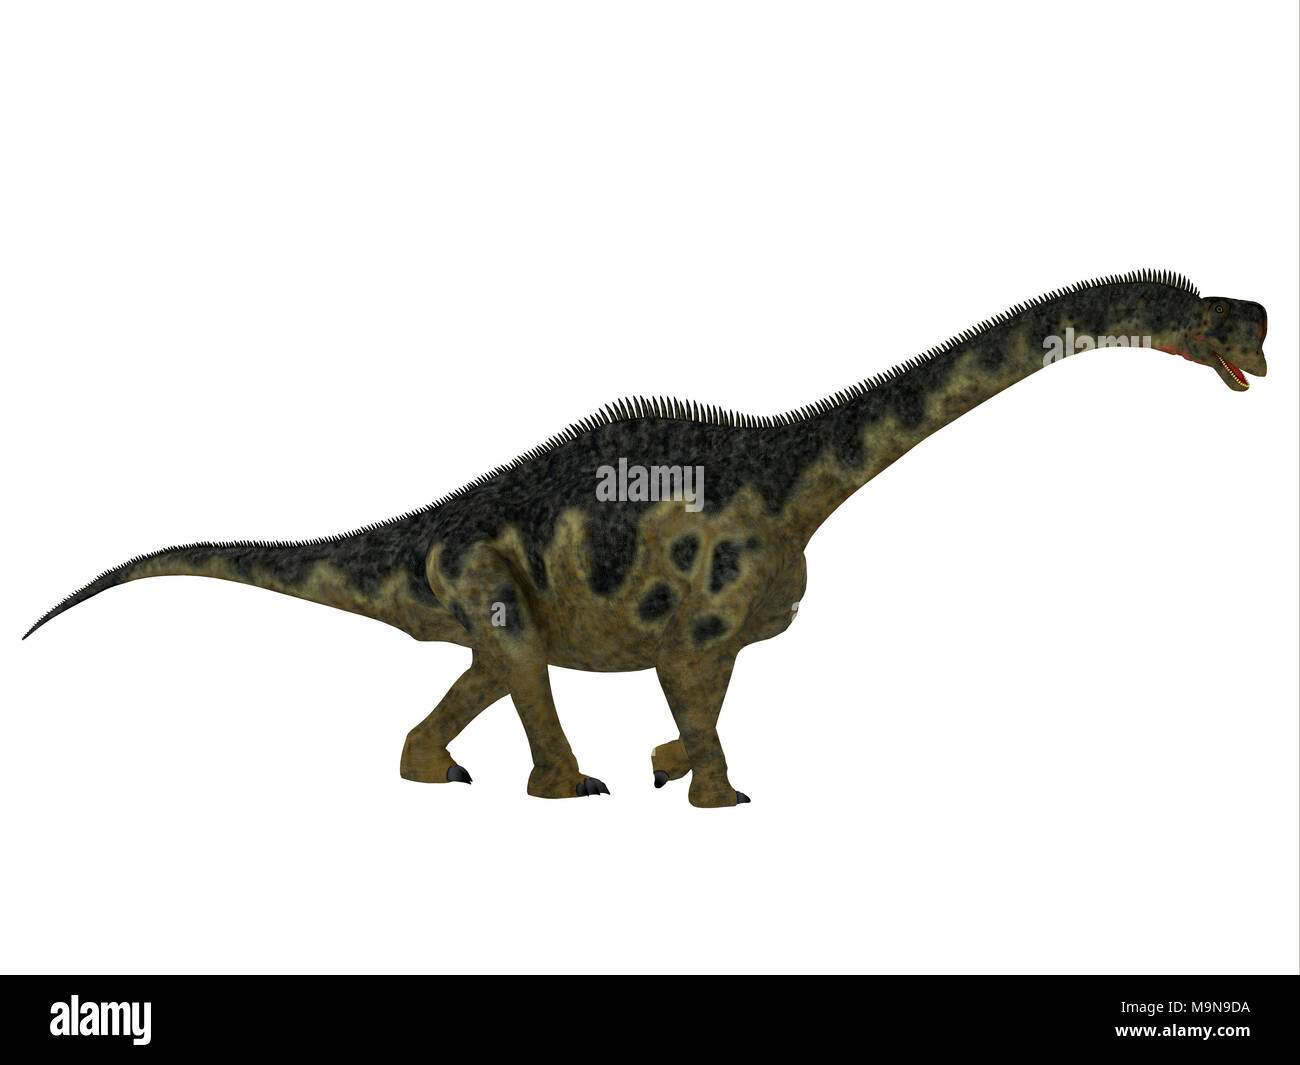 Europasaurus Dinosaur Side Profile - Europasaurus was a sauropod herbivorous dinosaur that lived in Germany, Europe during the Jurassic Period. - Stock Image